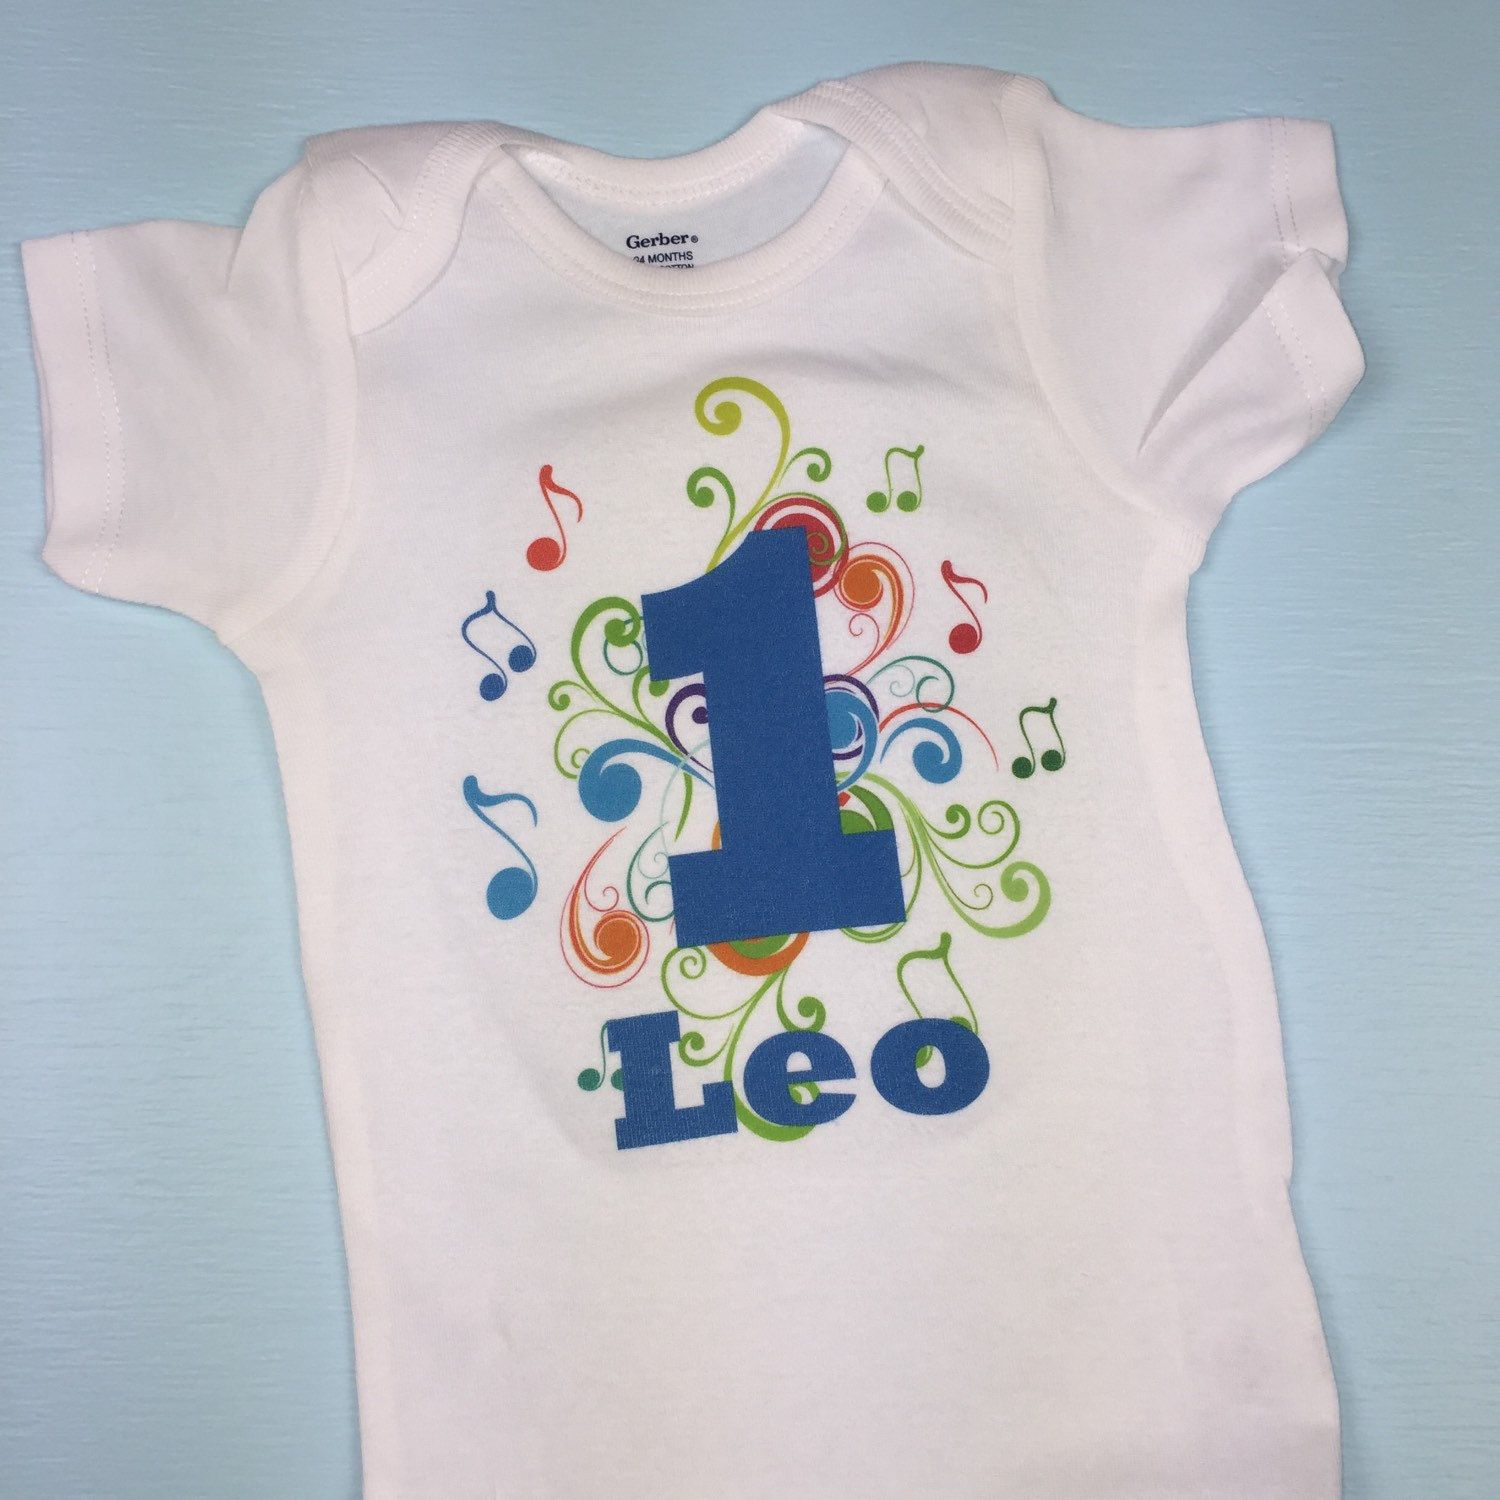 c46ada5970712 Boy s music themed birthday Onesie outfit. Personalized with your child s  name. Find this Pin and more on 1 year old ...